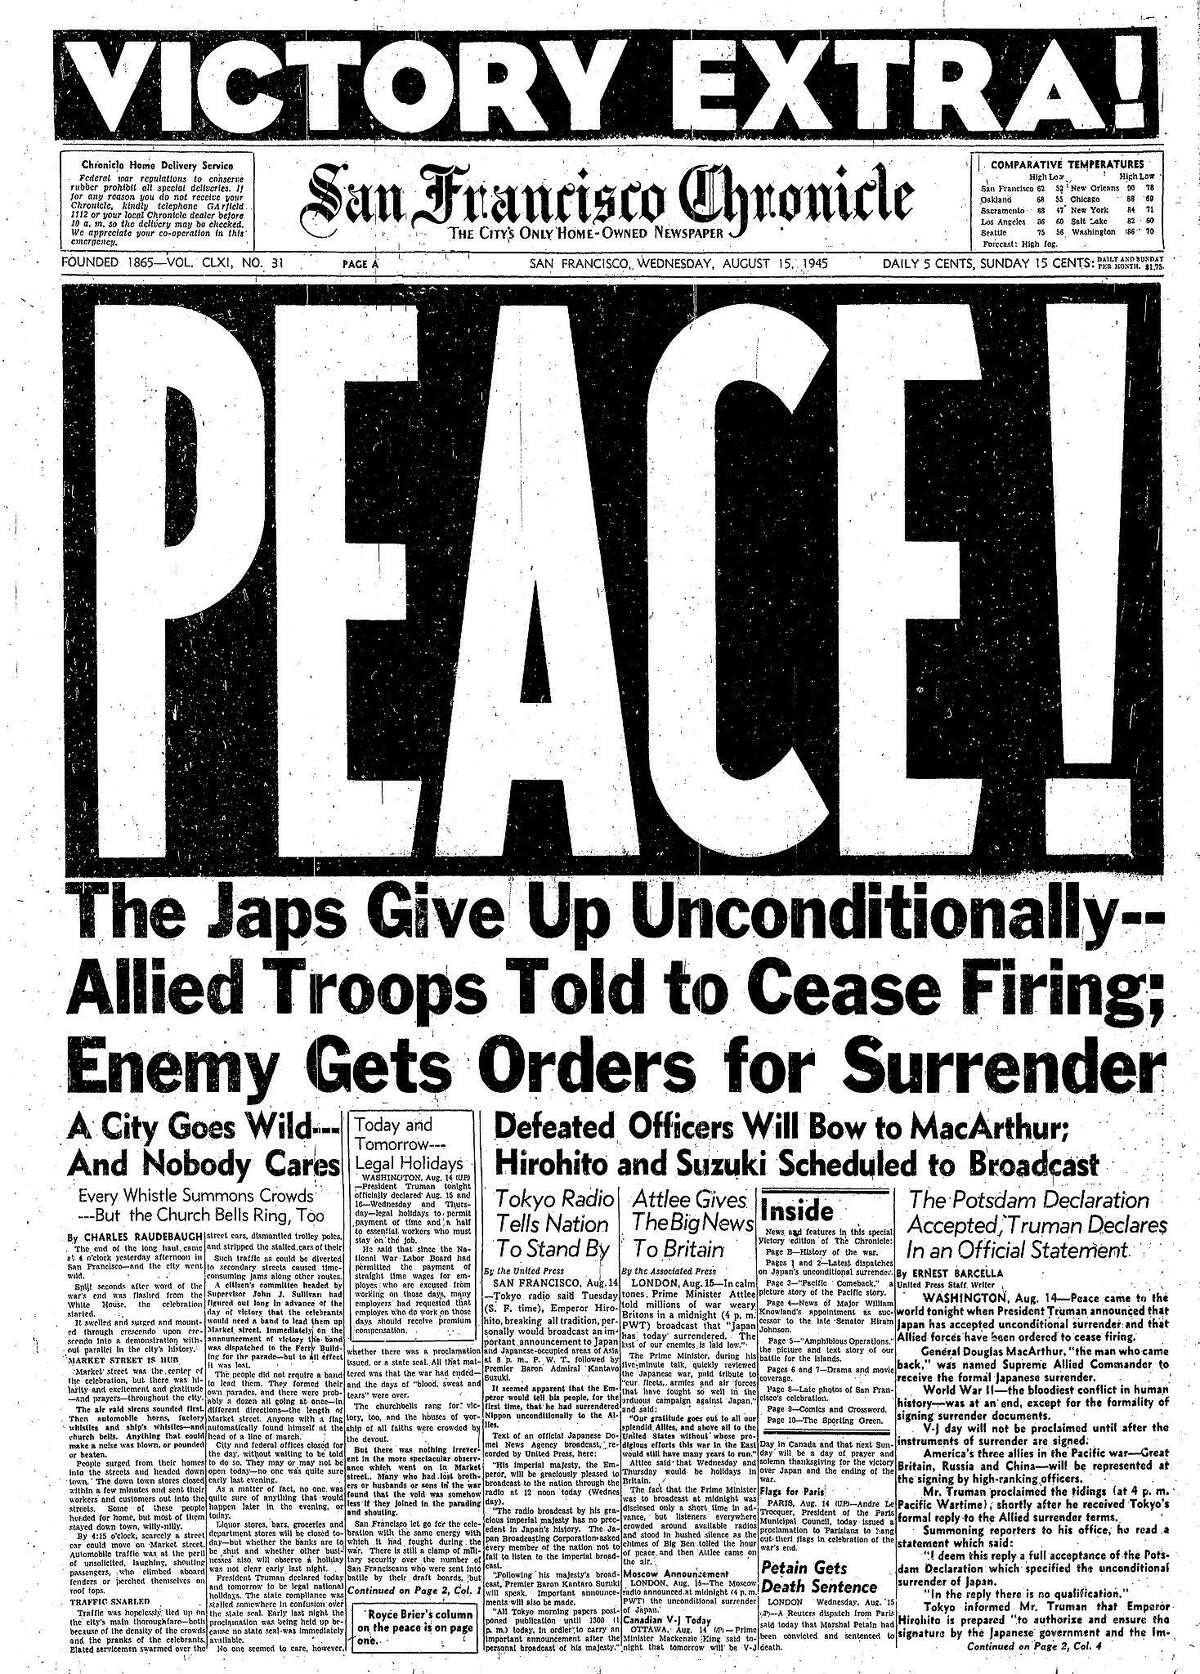 Chronicle August 15, 1945, front page announcing V-J Day, the surrender of Japan and the end of World War II